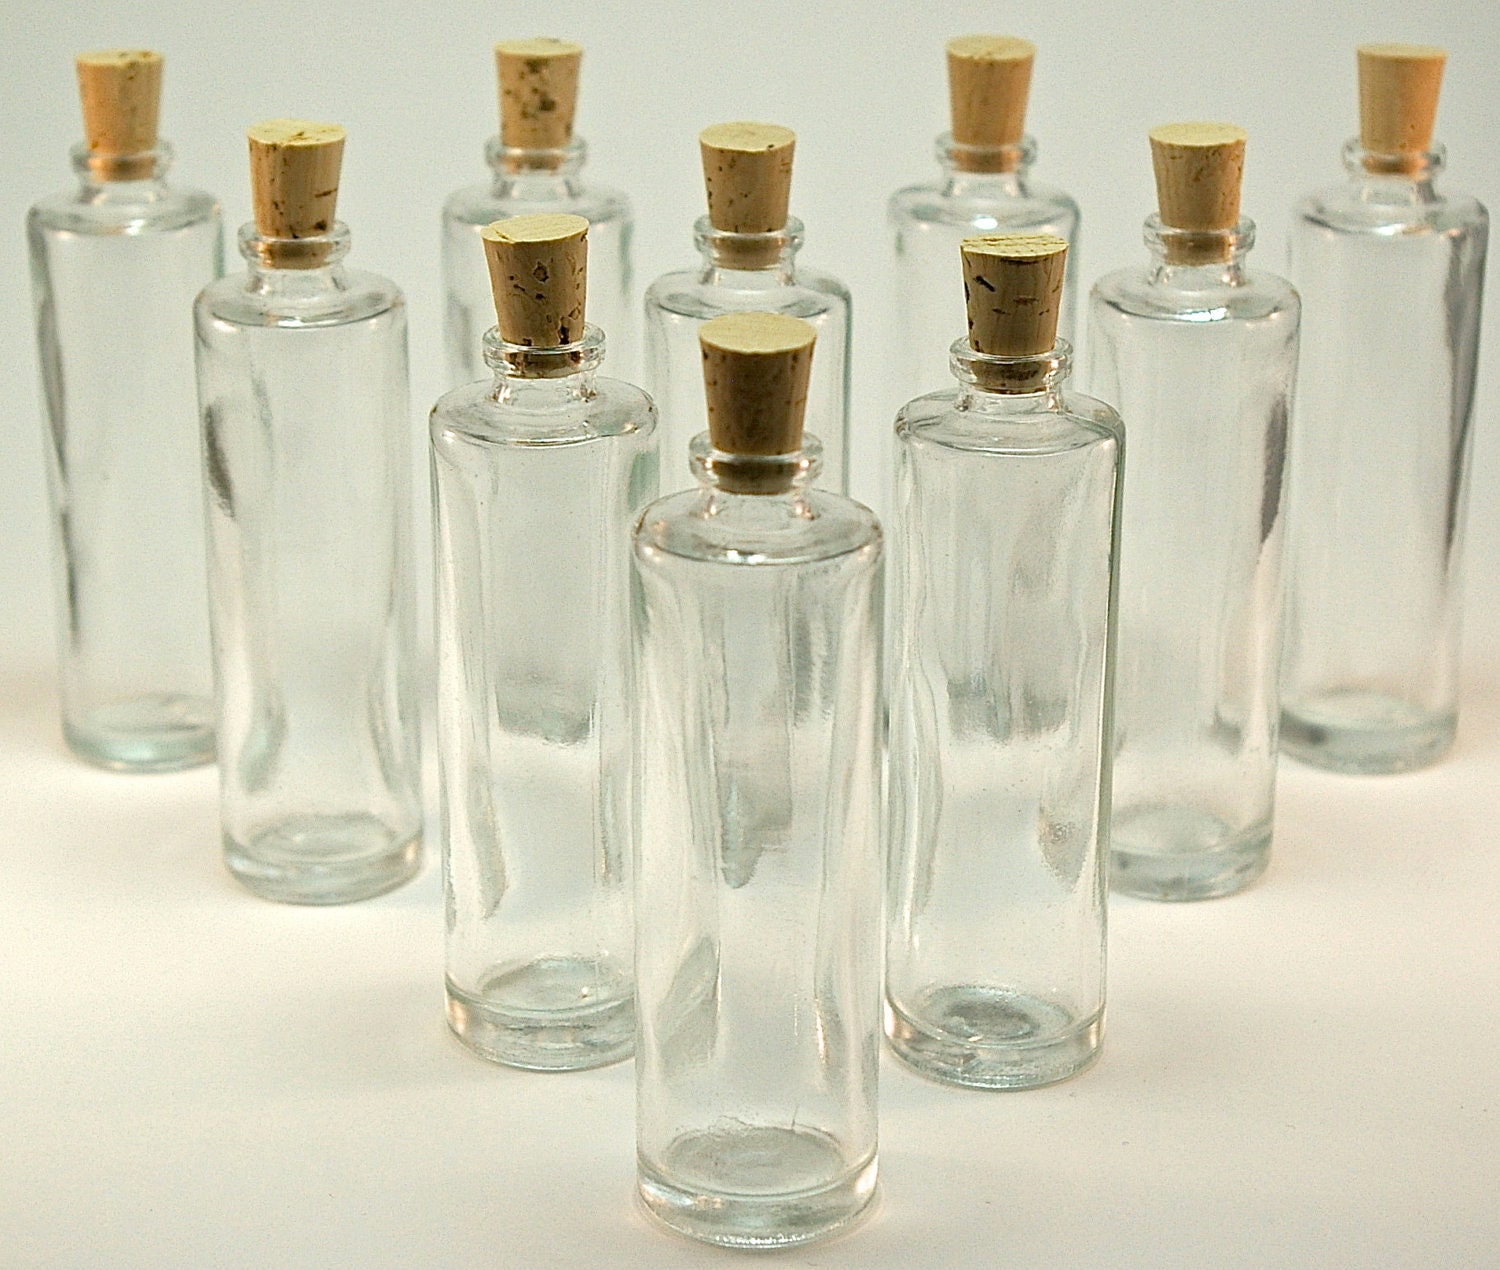 50 Mini Glass Bottles With Corks 1 1 4 Ounce 35ml For Diy